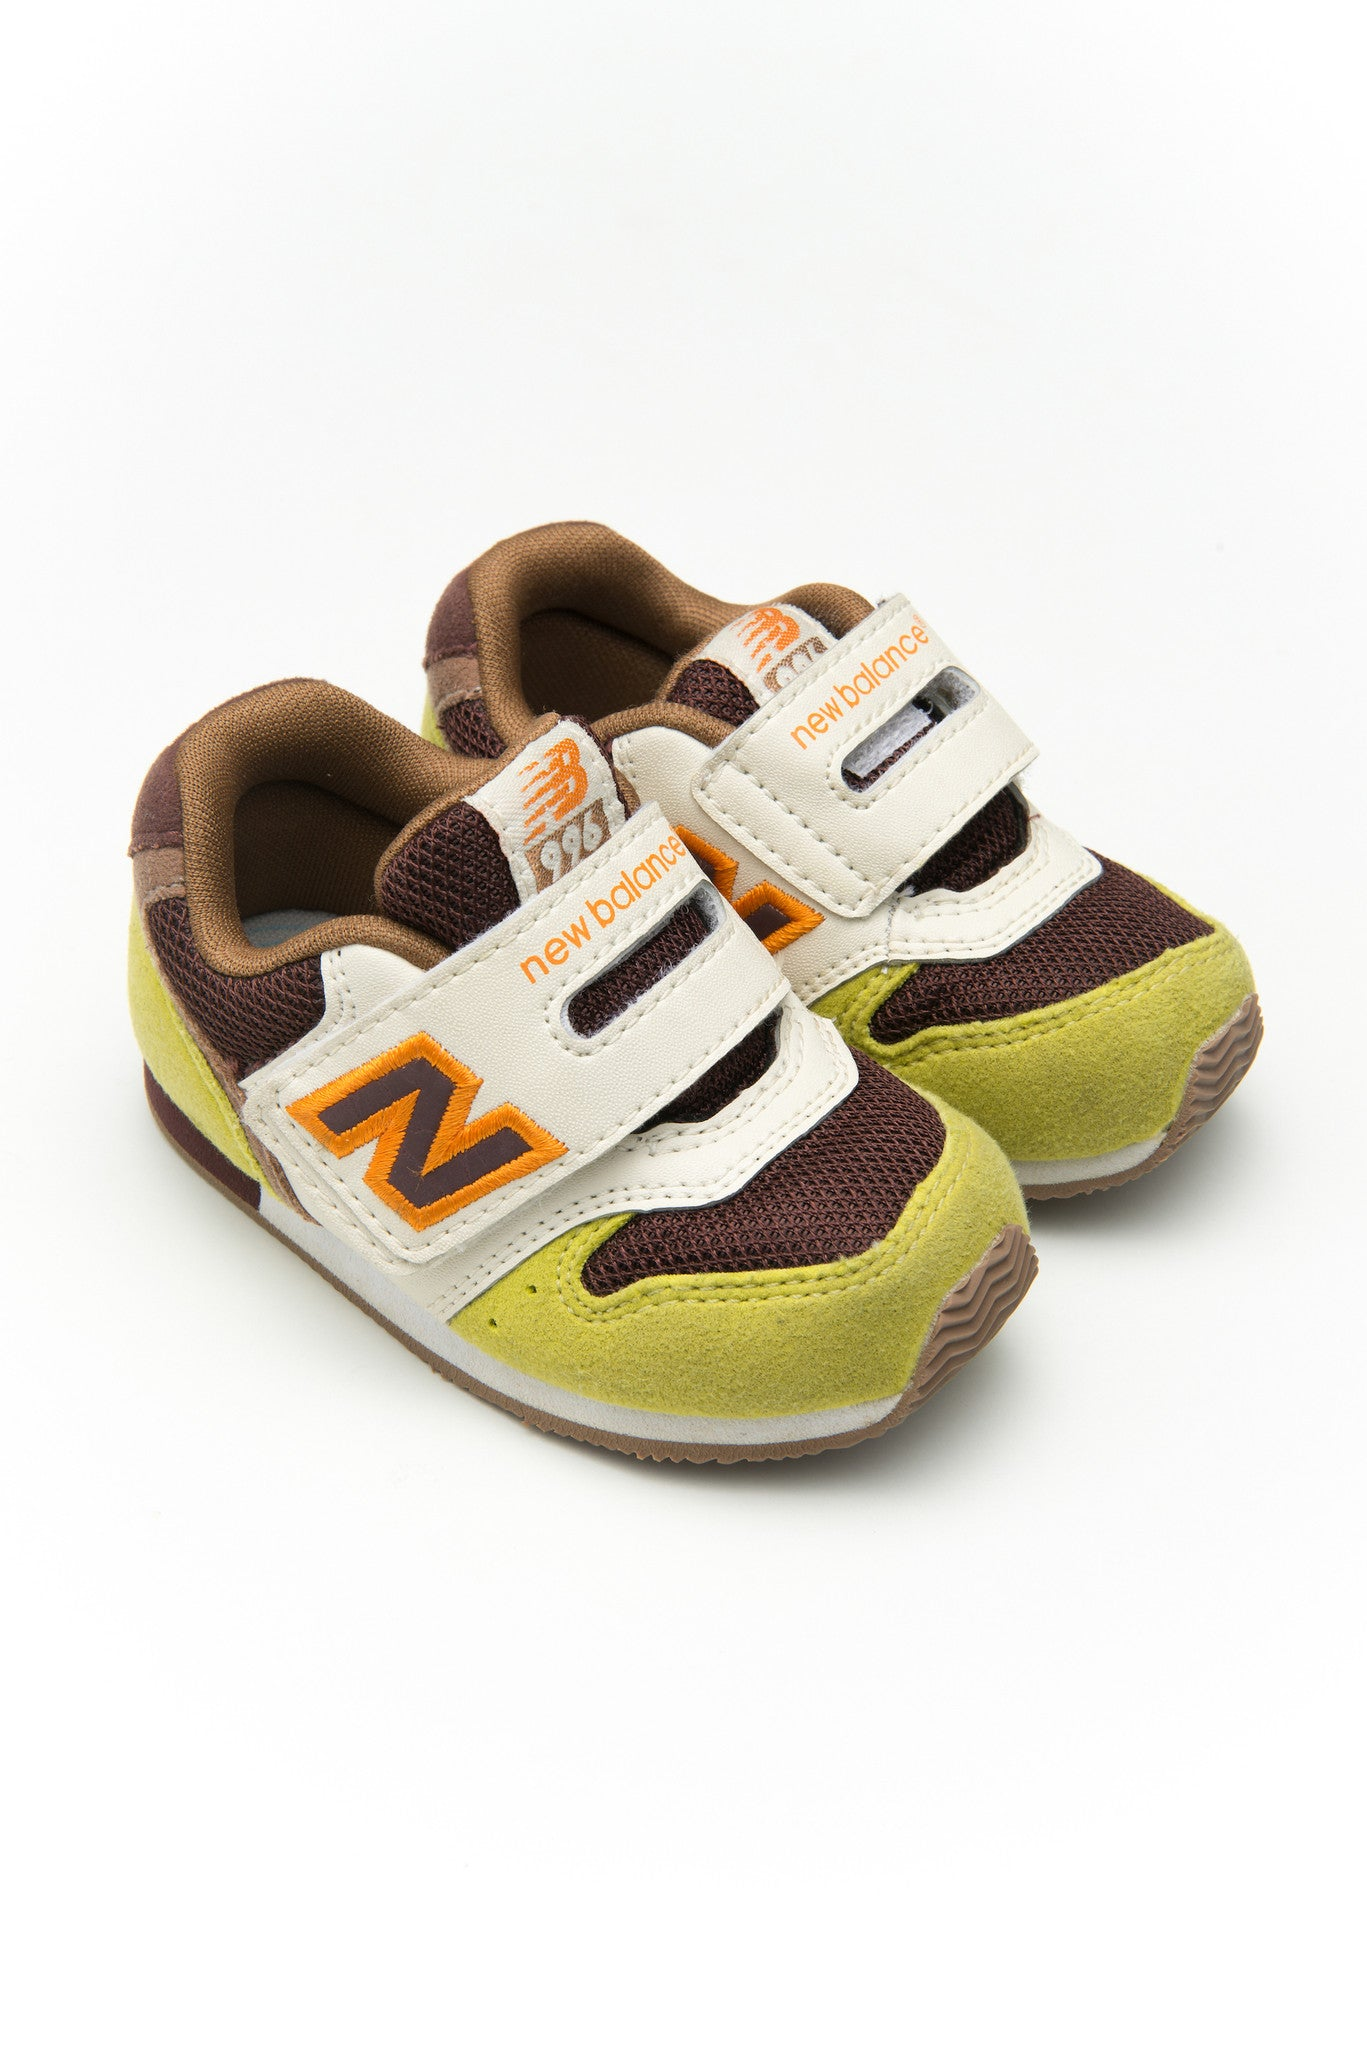 10001303 New Balance Baby~Shoes 18-24M at Retykle